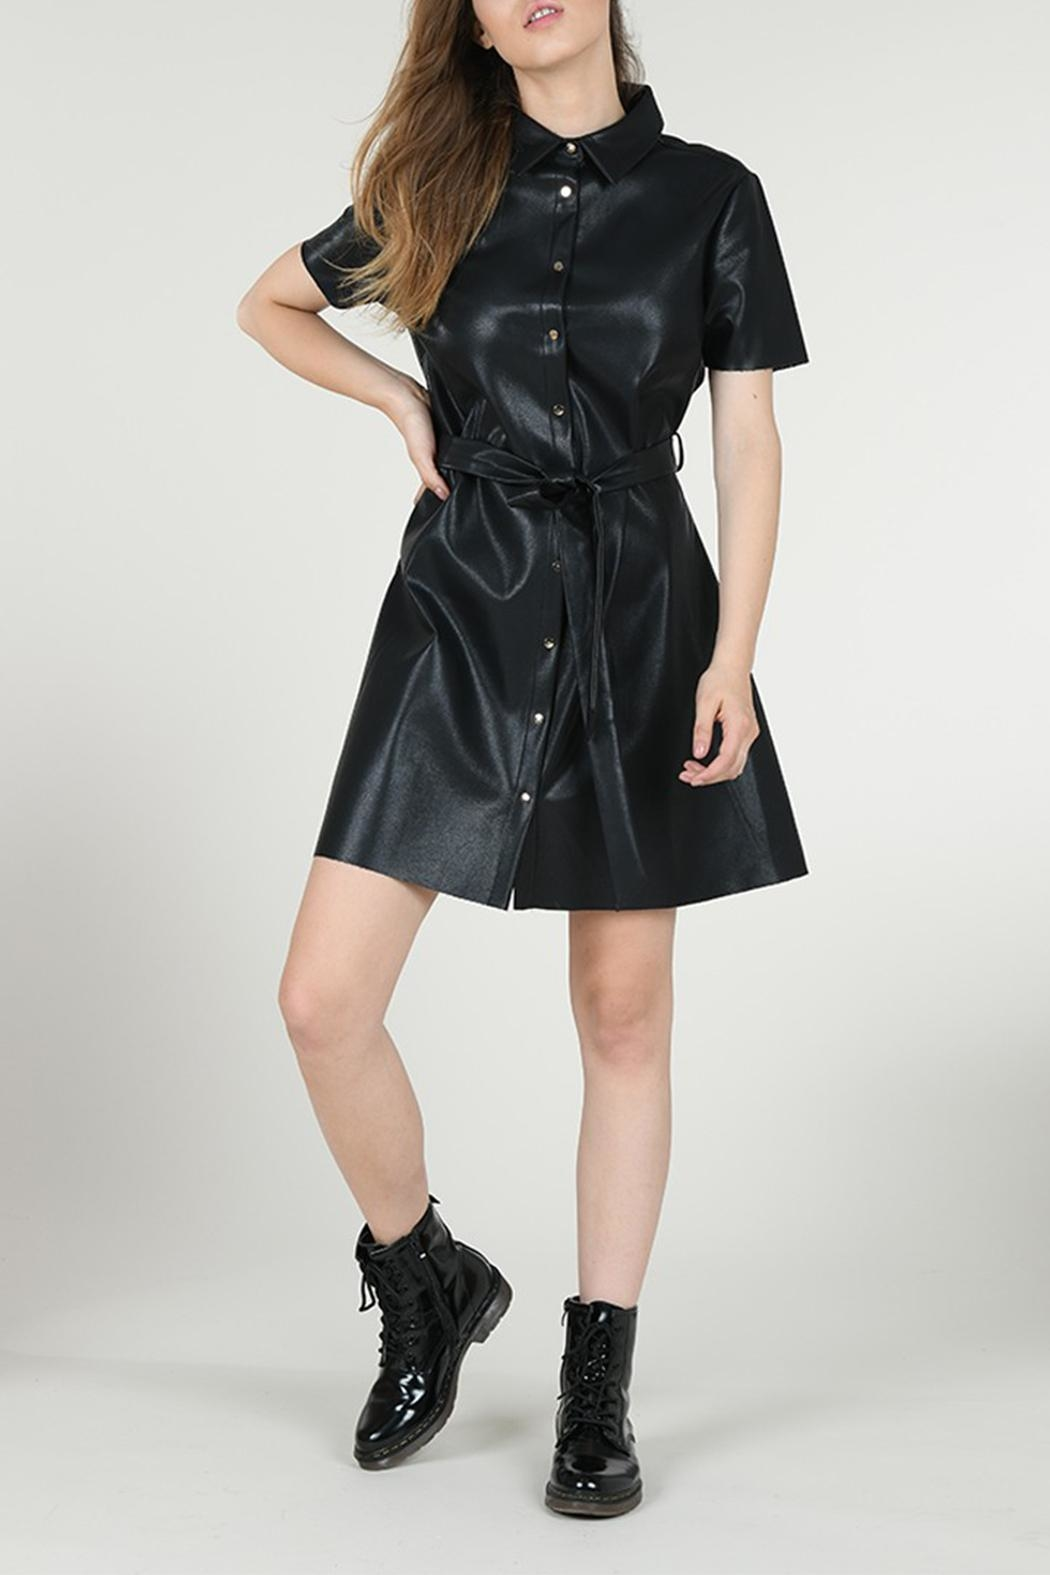 Molly Bracken Faux Leather Dress - Front Full Image